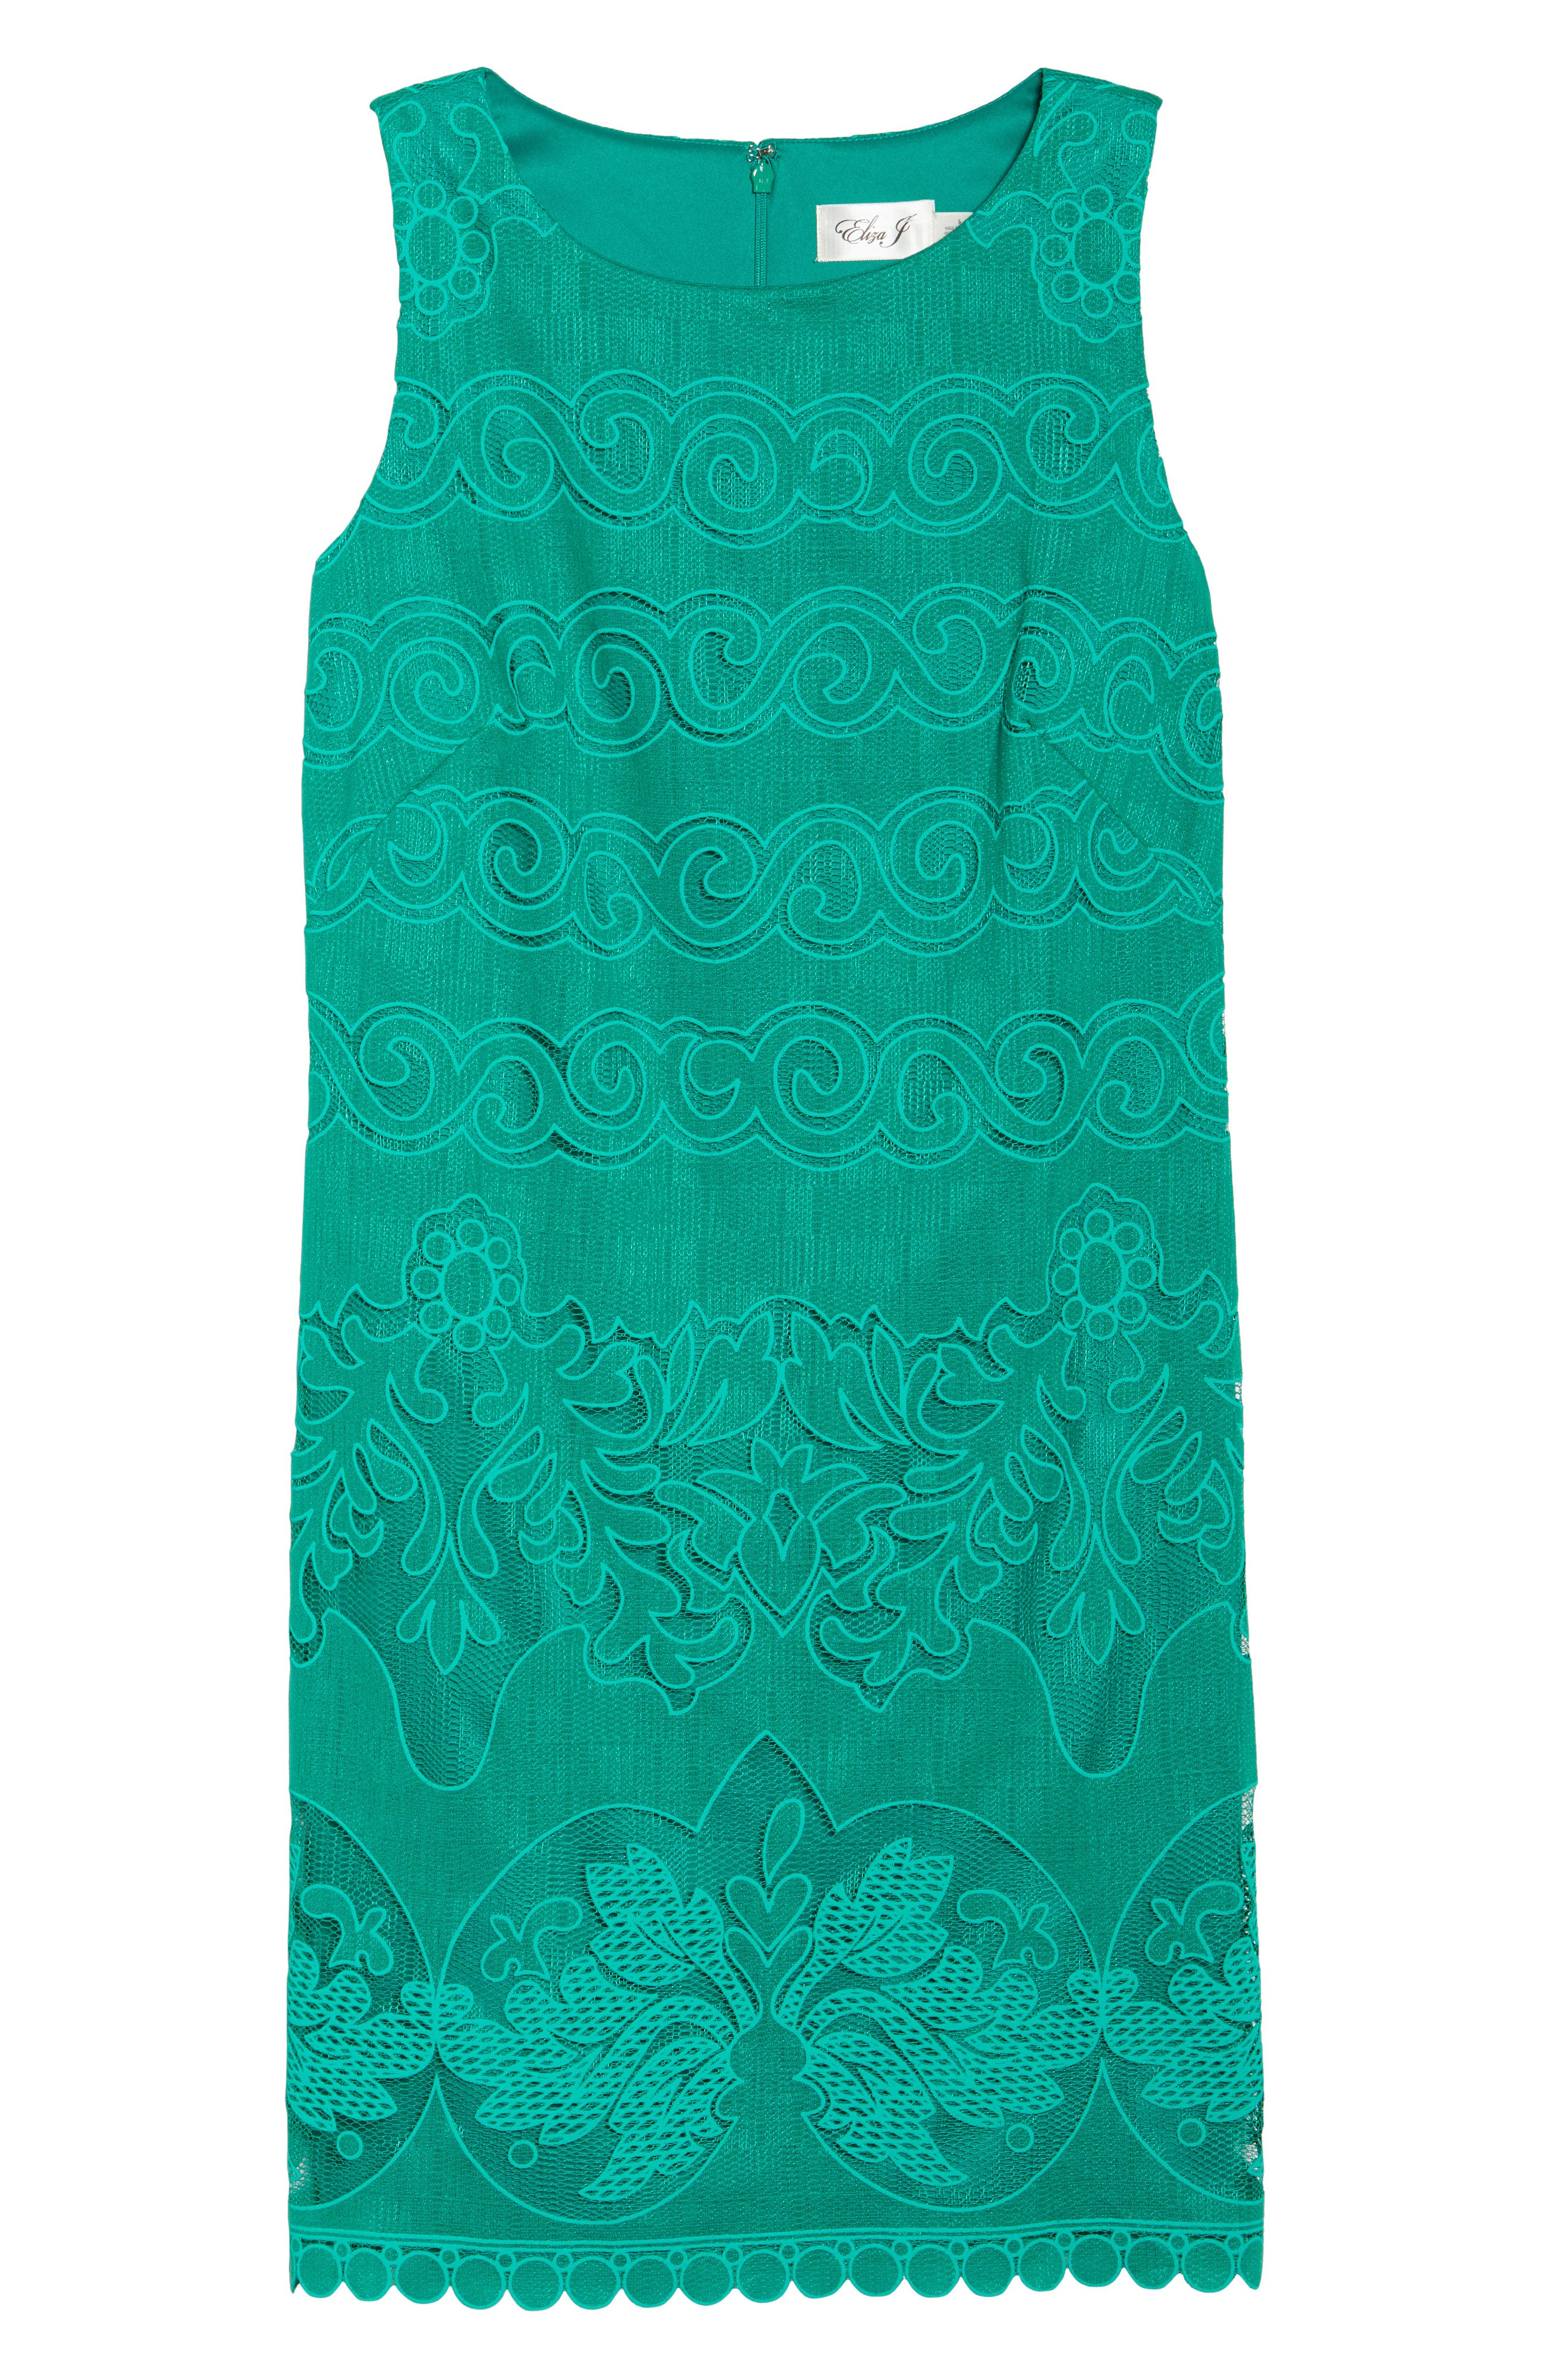 A-Line Dress,                             Alternate thumbnail 6, color,                             Green